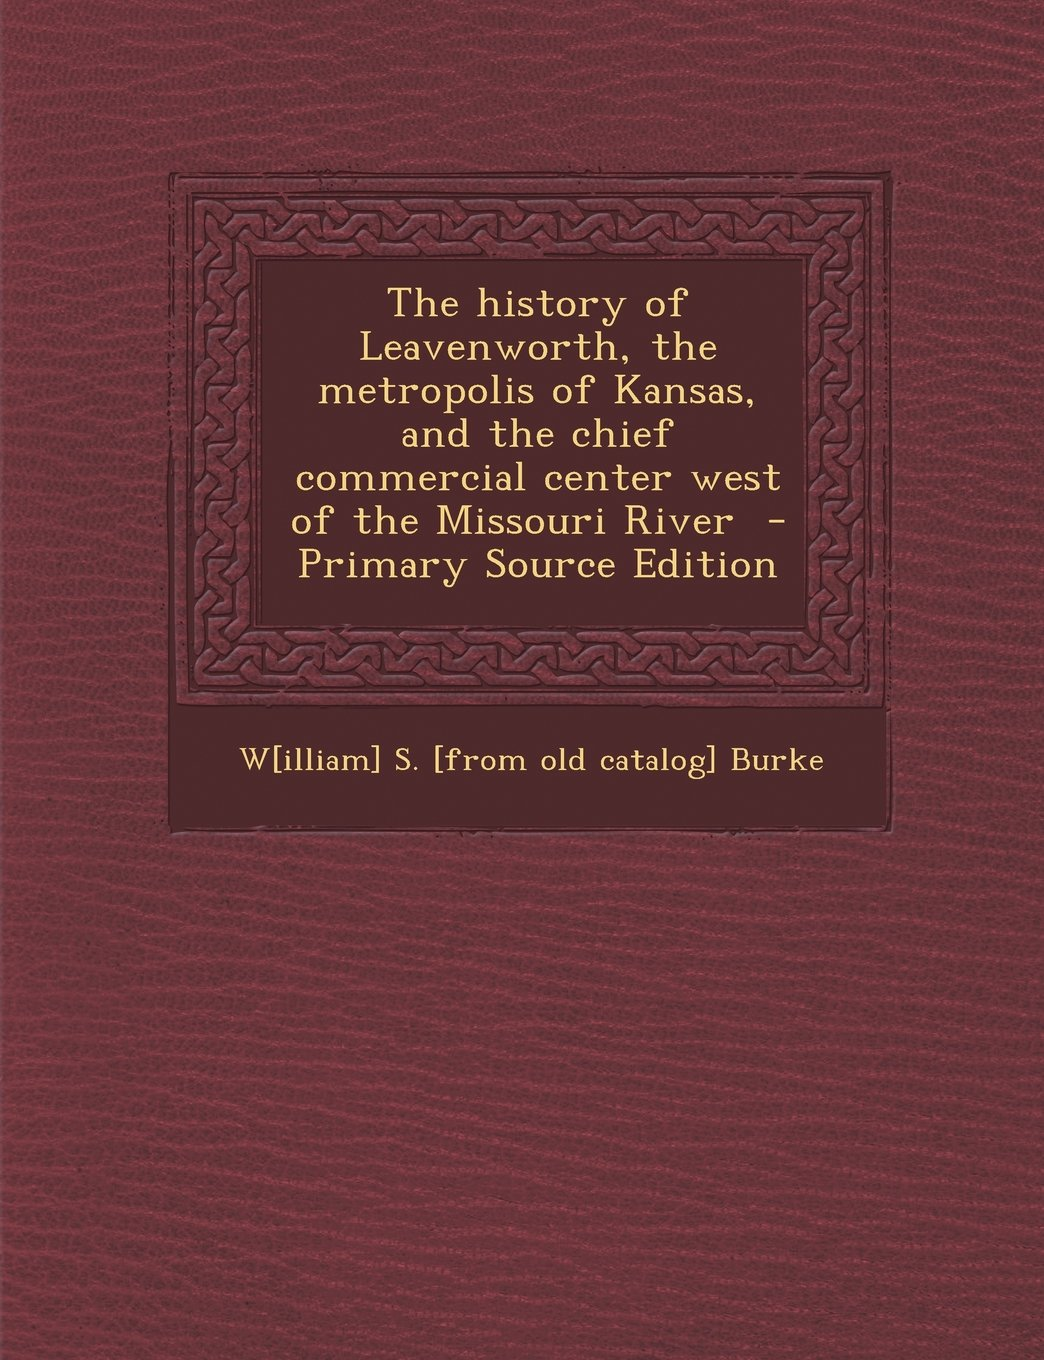 Download The History of Leavenworth, the Metropolis of Kansas, and the Chief Commercial Center West of the Missouri River - Primary Source Edition PDF